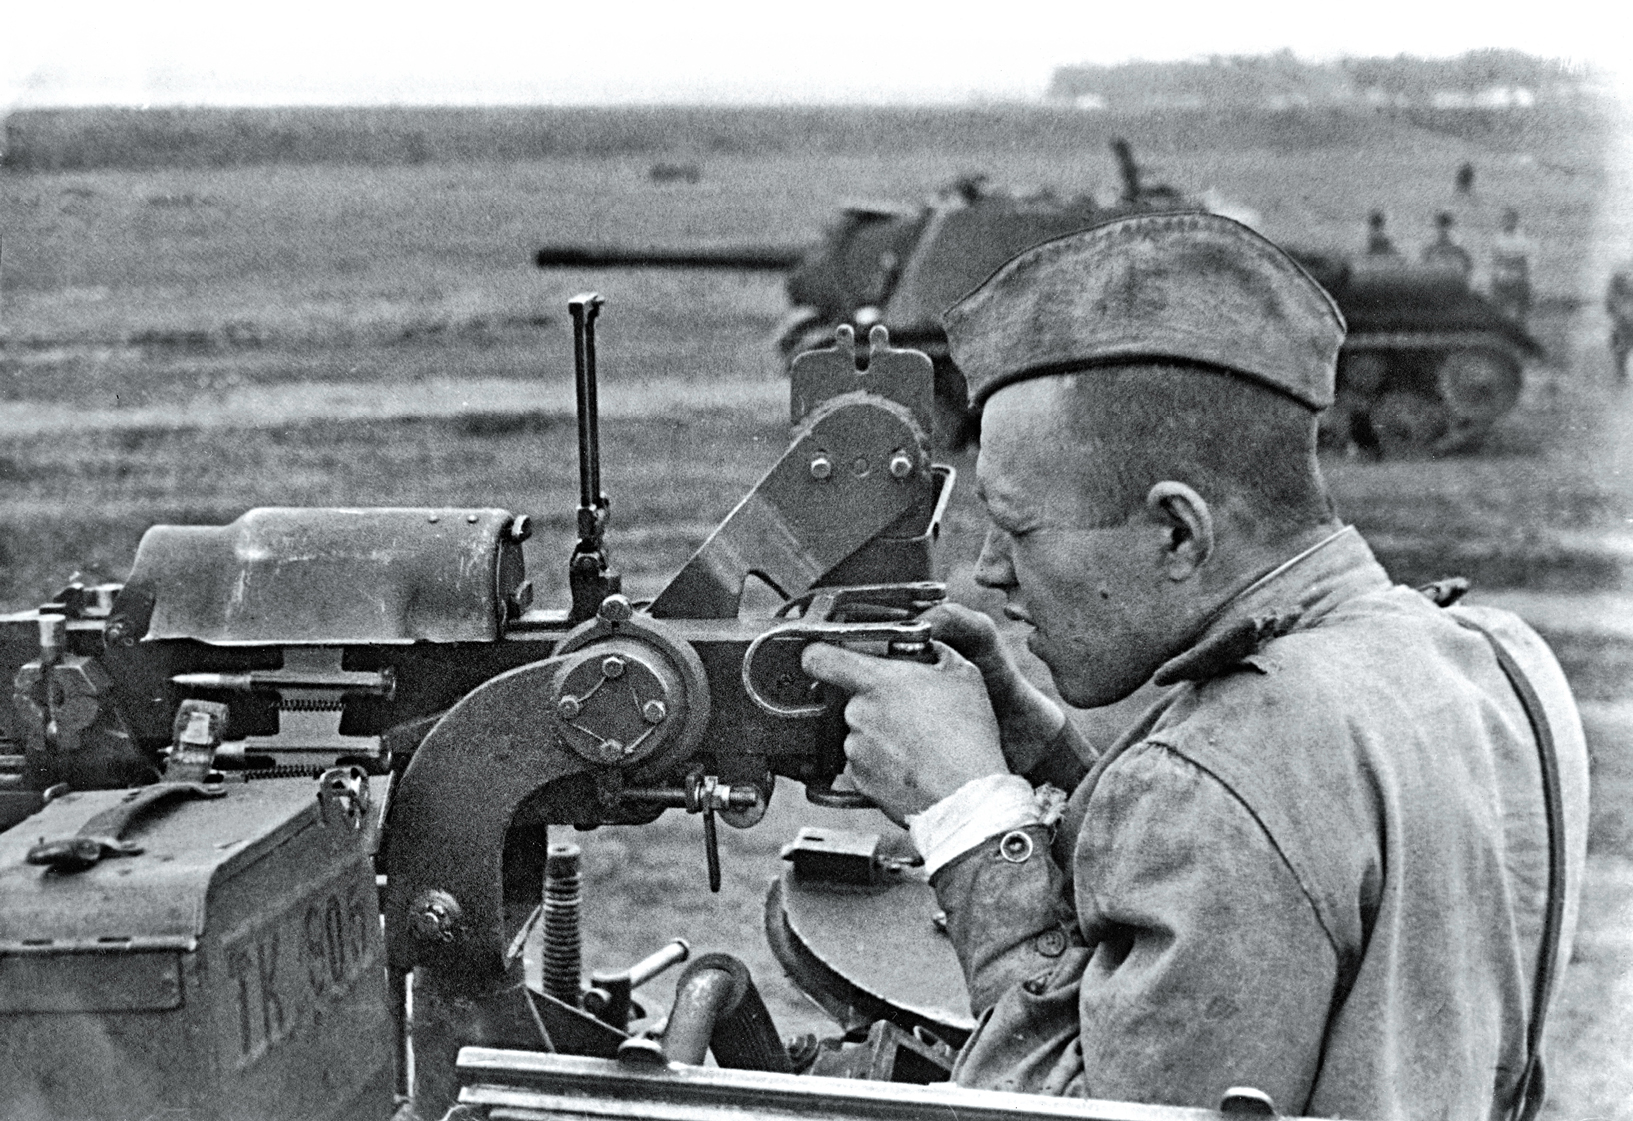 A Soviet tanker fires a DShK mounted on an ISU-152.